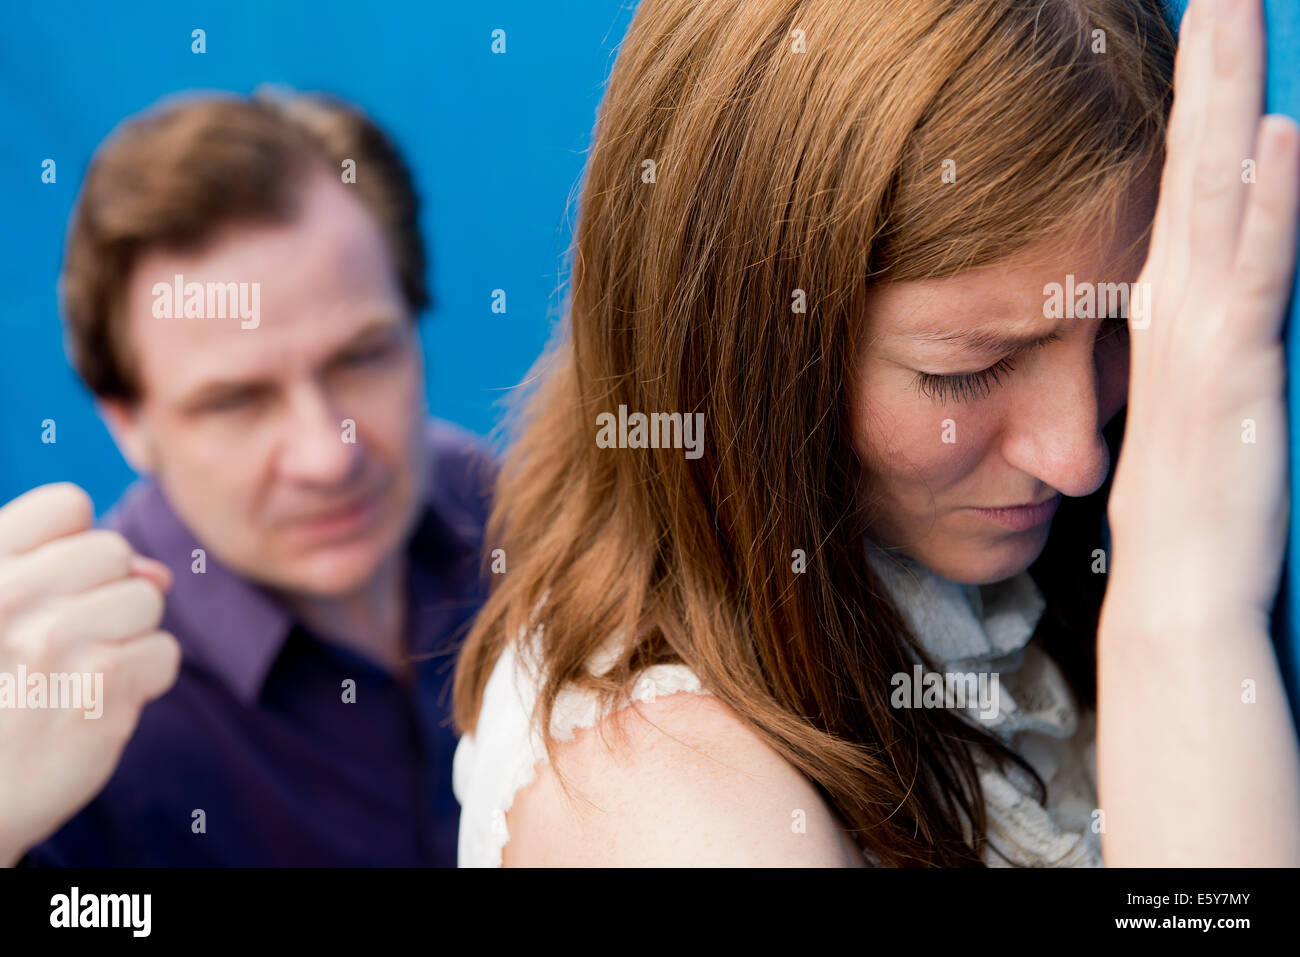 Tearful woman with her back to an aggressive man waving a clenched fist at her. Stock Photo